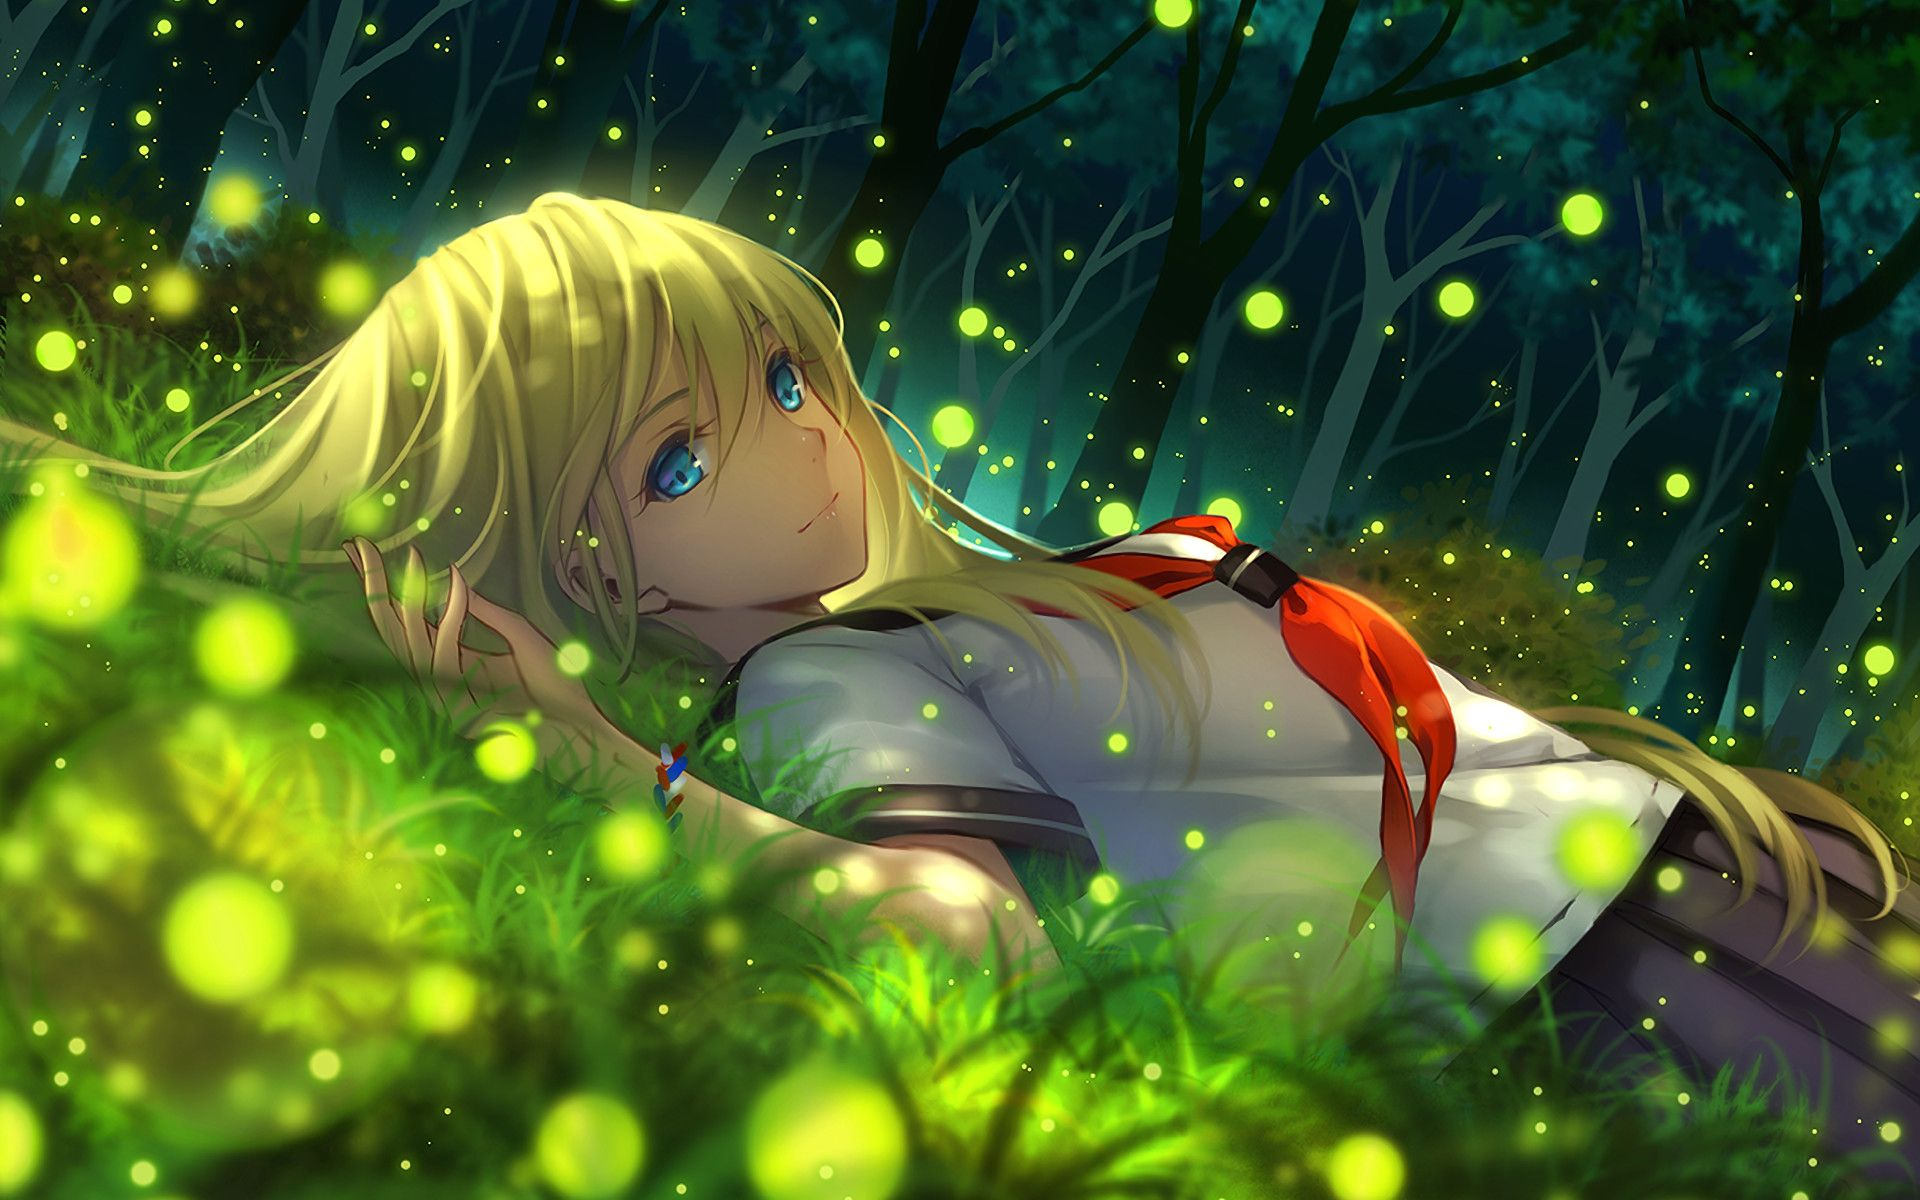 Aesthetic Anime Laptop Wallpapers - Top Free Aesthetic ...